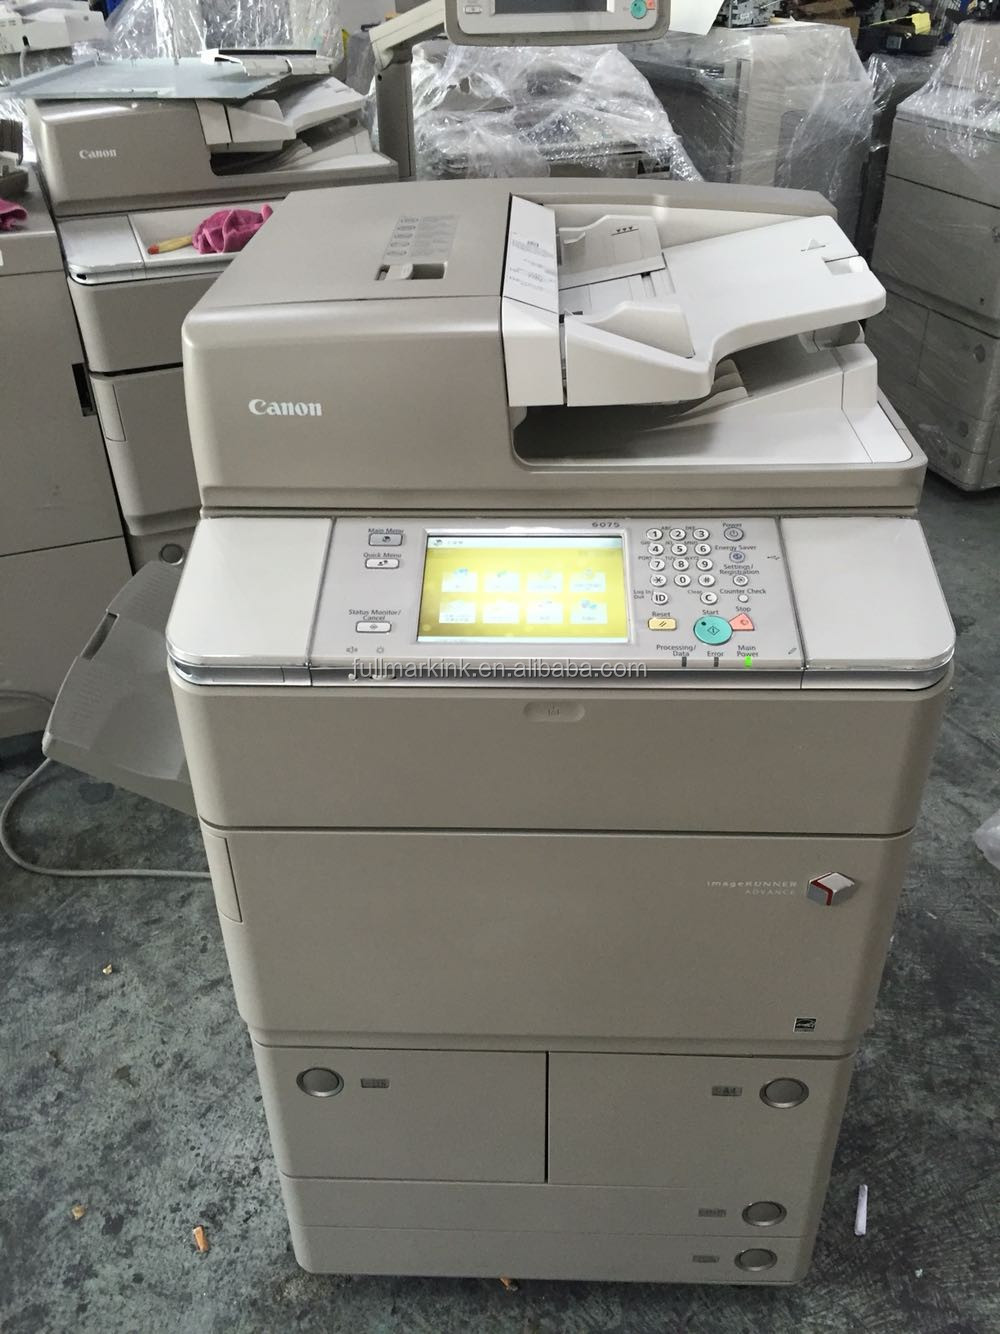 used status type IR copier machine ADV 6075 with sorter photocopier machines